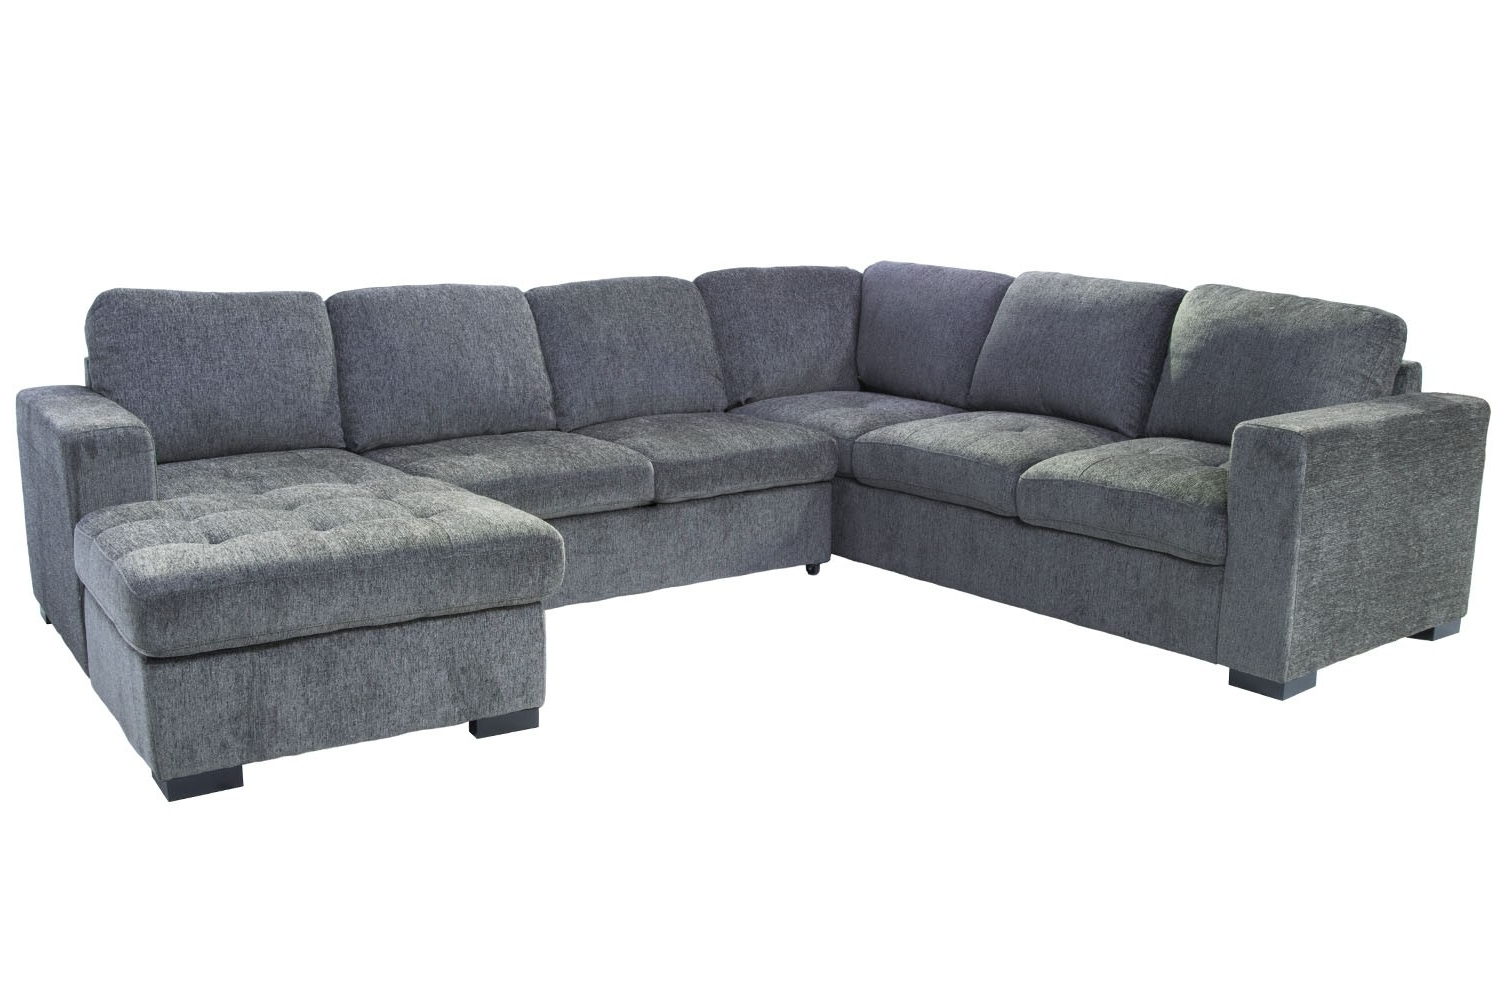 Mor Furniture For Less Throughout Well Known Reclining Sofas With Chaise (View 14 of 15)